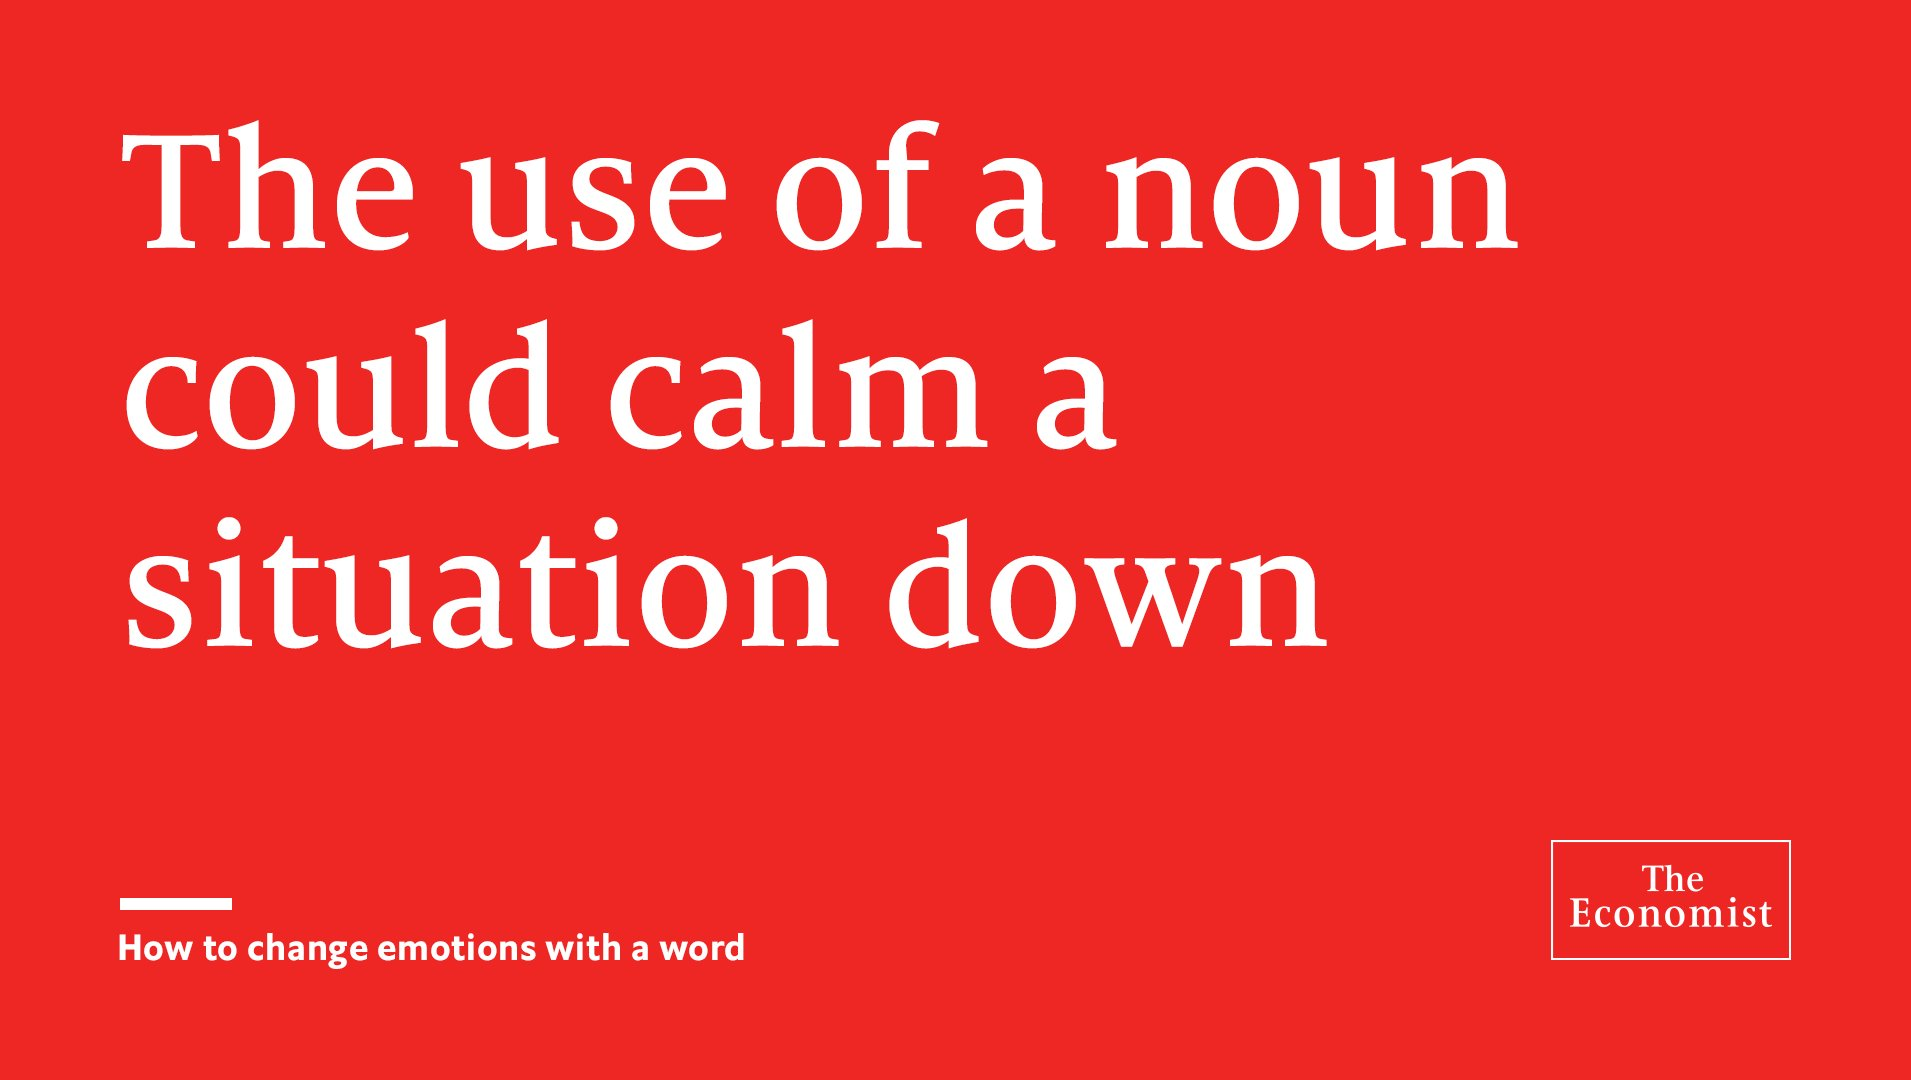 Verbs are more likely to arouse emotions than nouns are https://t.co/Pb1pgij0IS https://t.co/5UDw5nHEW7